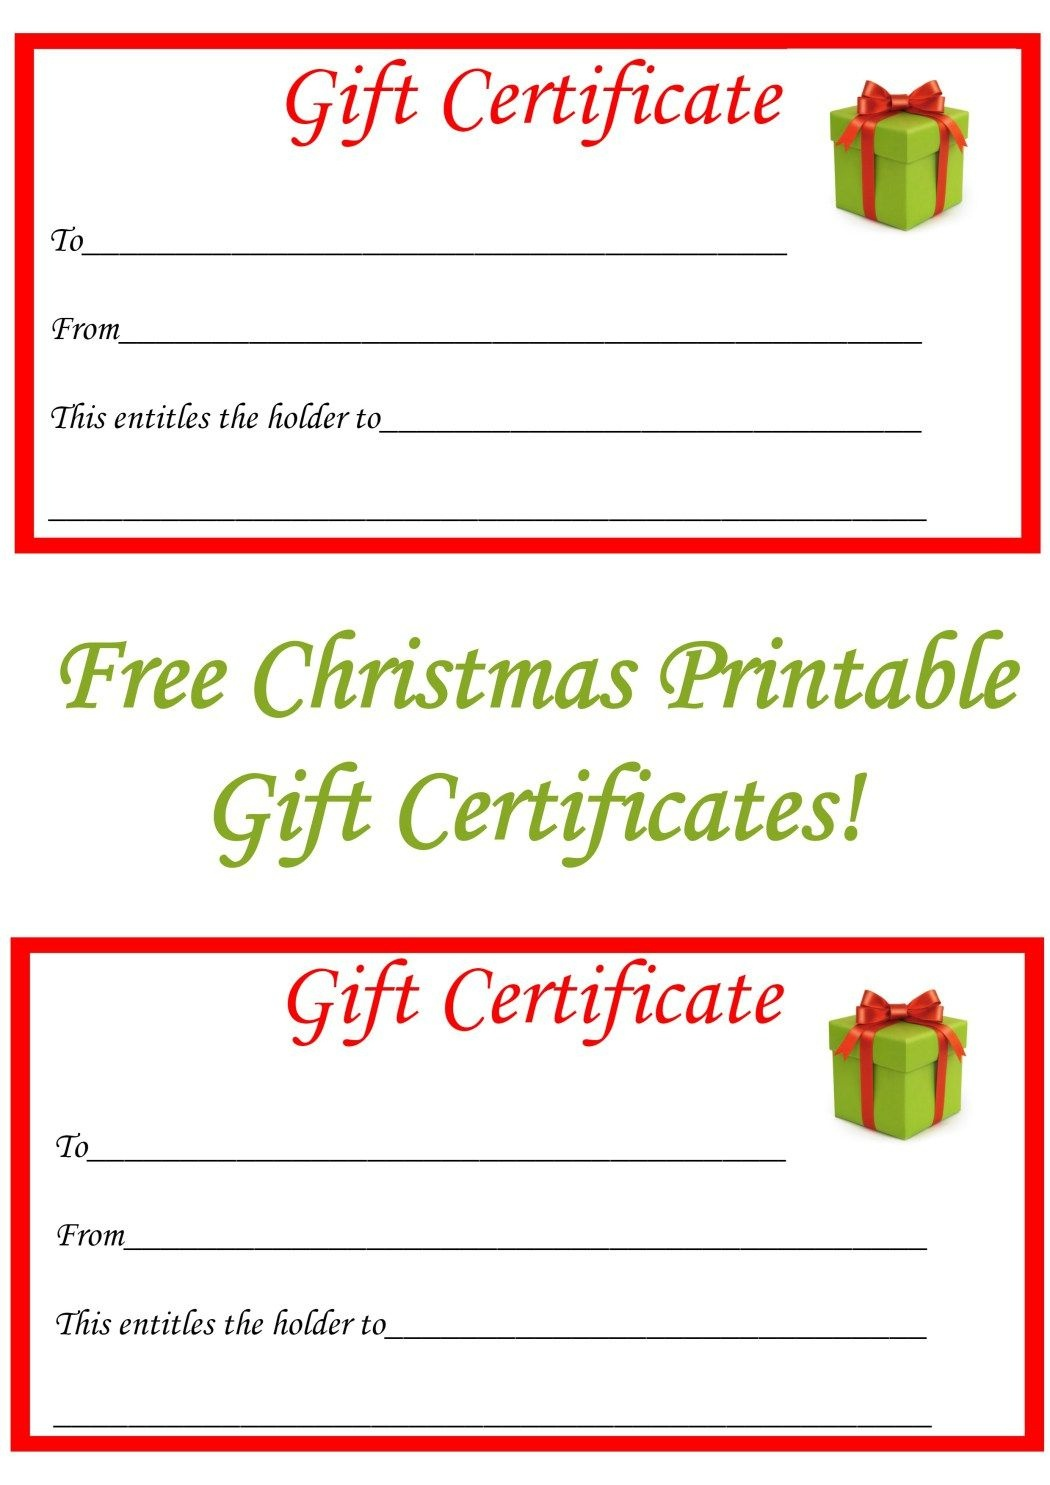 Free Christmas Printable Gift Certificates | Gift Ideas | Christmas - Free Printable Gift Coupons